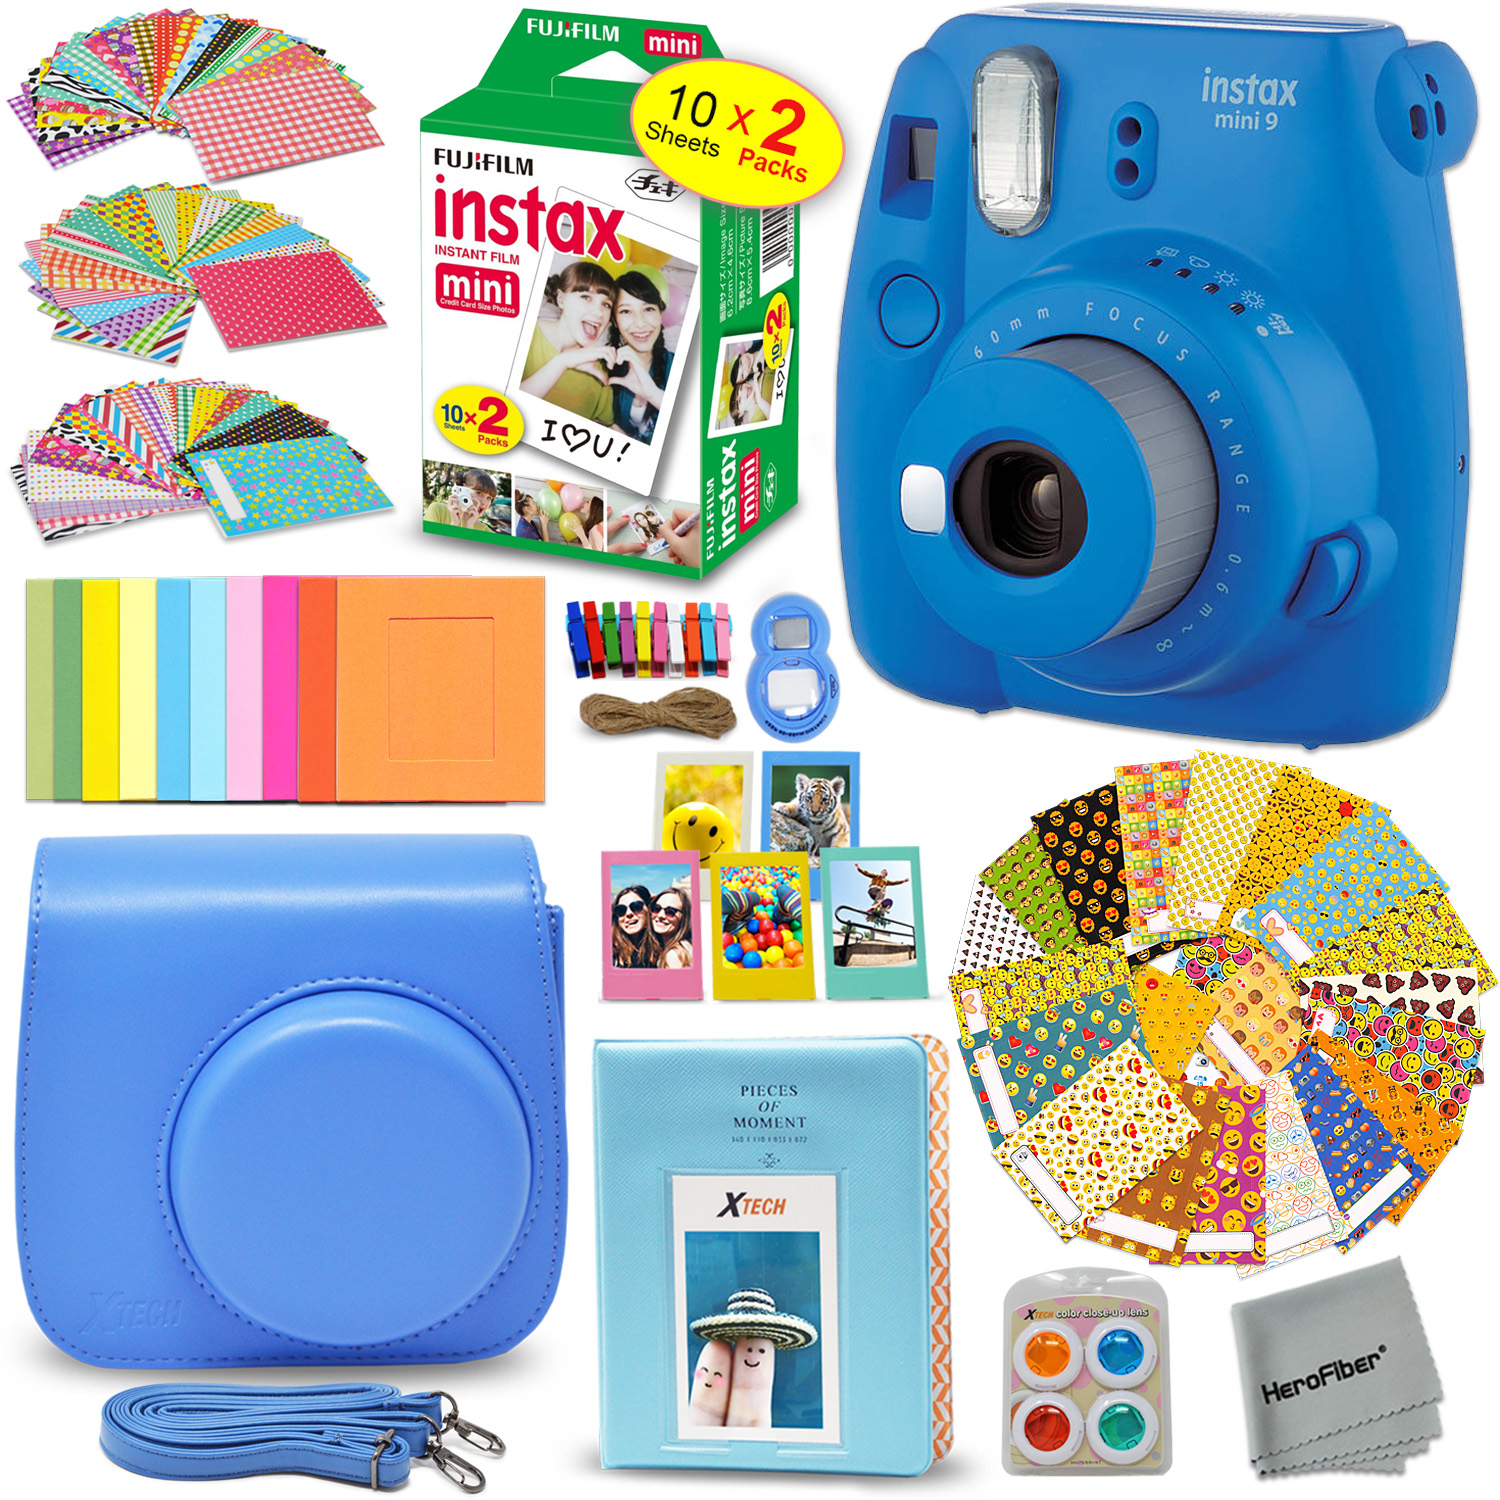 FujiFilm Instax Mini 9 Instant Camera SMOKEY WHITE + EMOJI Film stickers + Fuji INSTAX Film (20 SHeets) + Custom Fitted... by Fujifilm